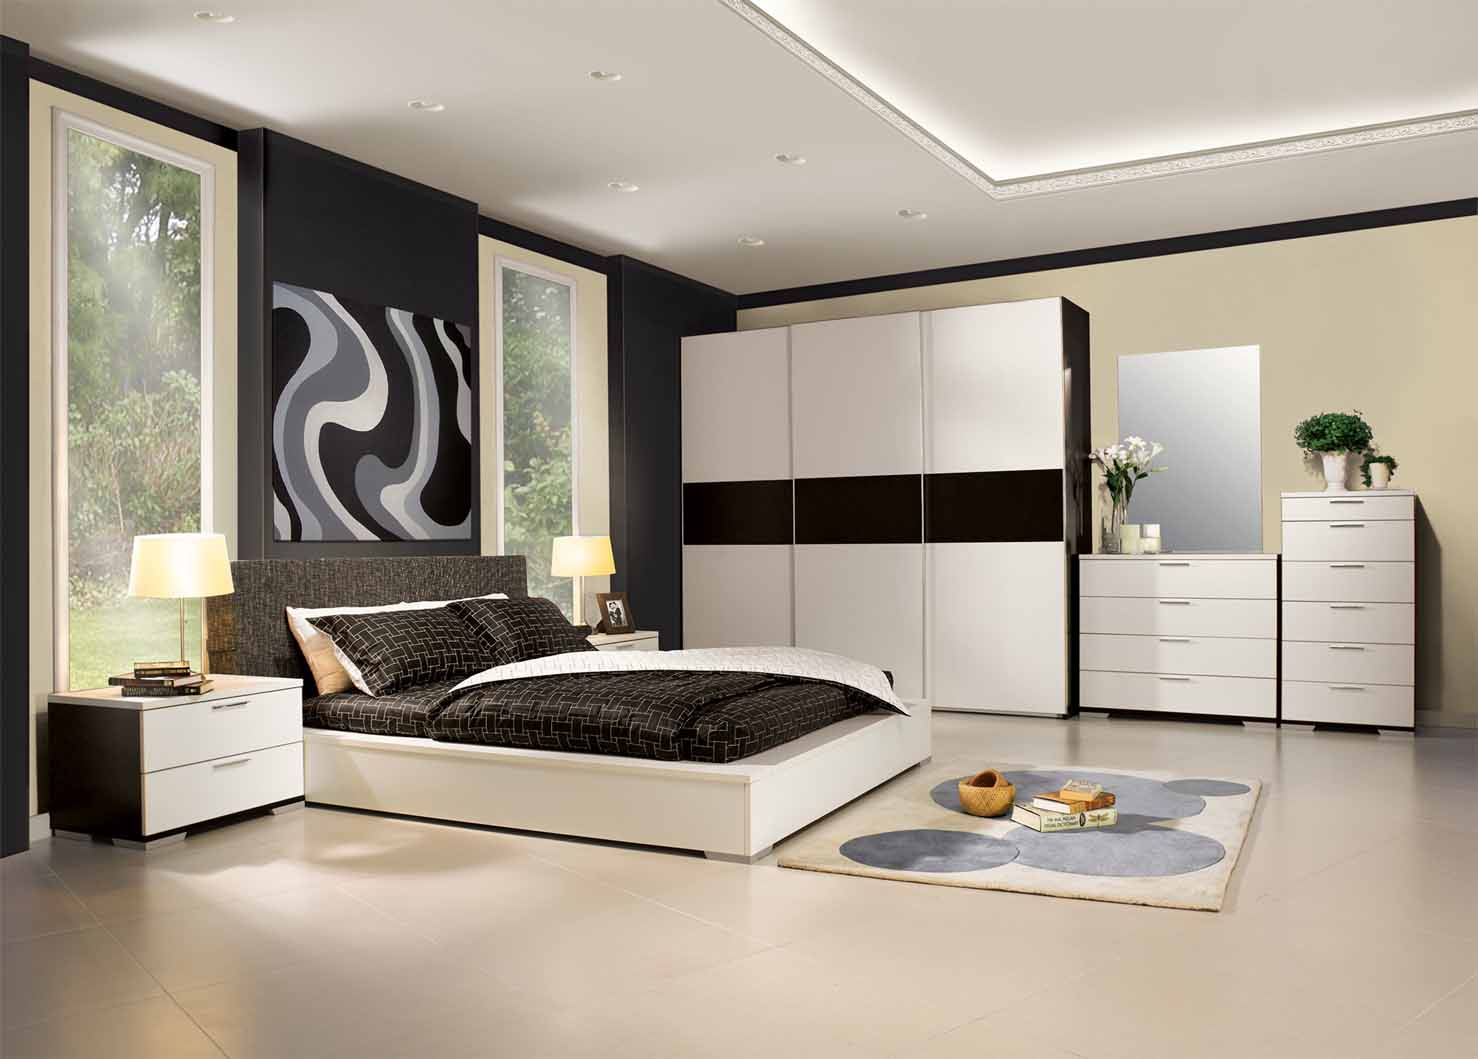 Modern black bedroom furniture popular interior house ideas for Bedroom contemporary interior design